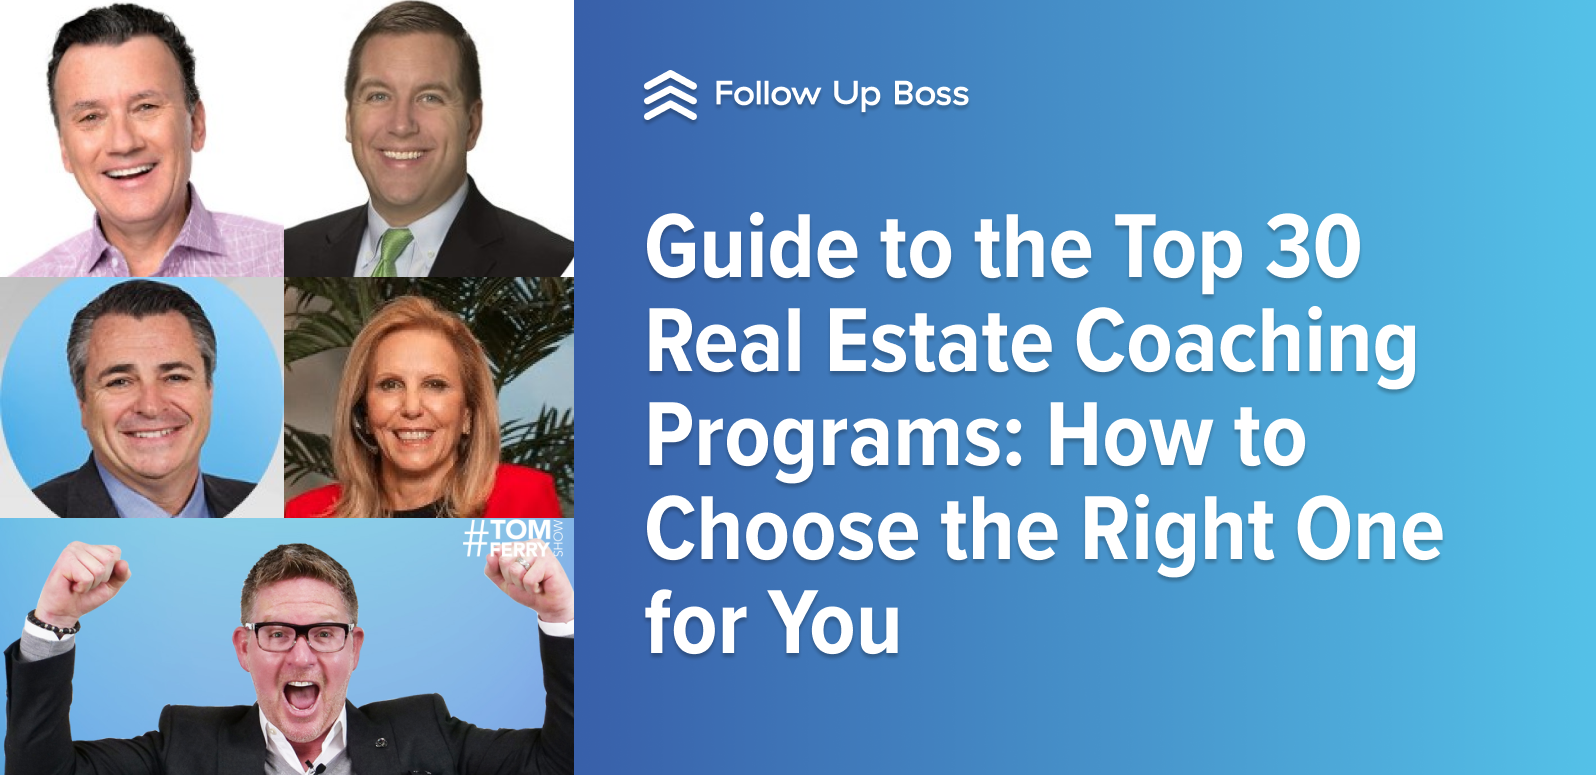 Guide to the Top 30+ Real Estate Coaching Programs: How to Choose the One for You